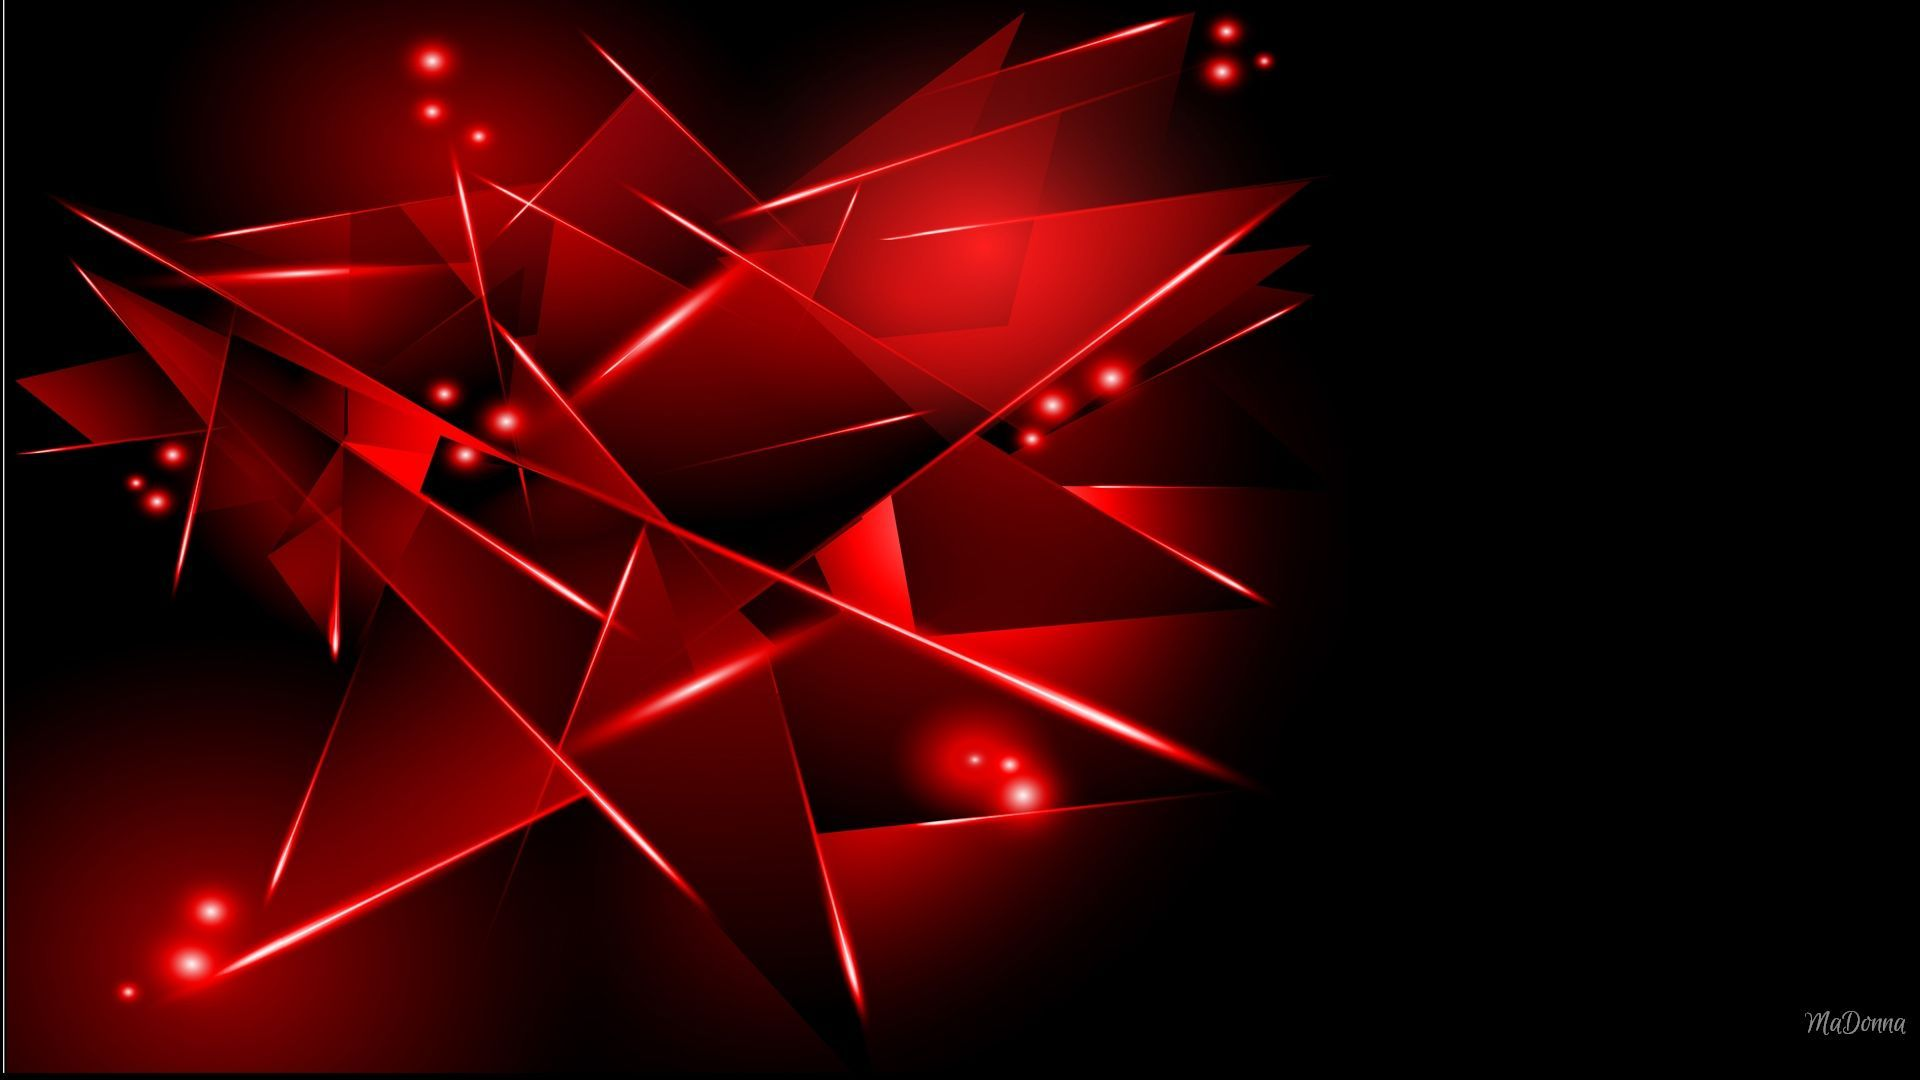 black and red wallpaper 1920x1080 878321 hd wallpaper backgrounds download black and red wallpaper 1920x1080